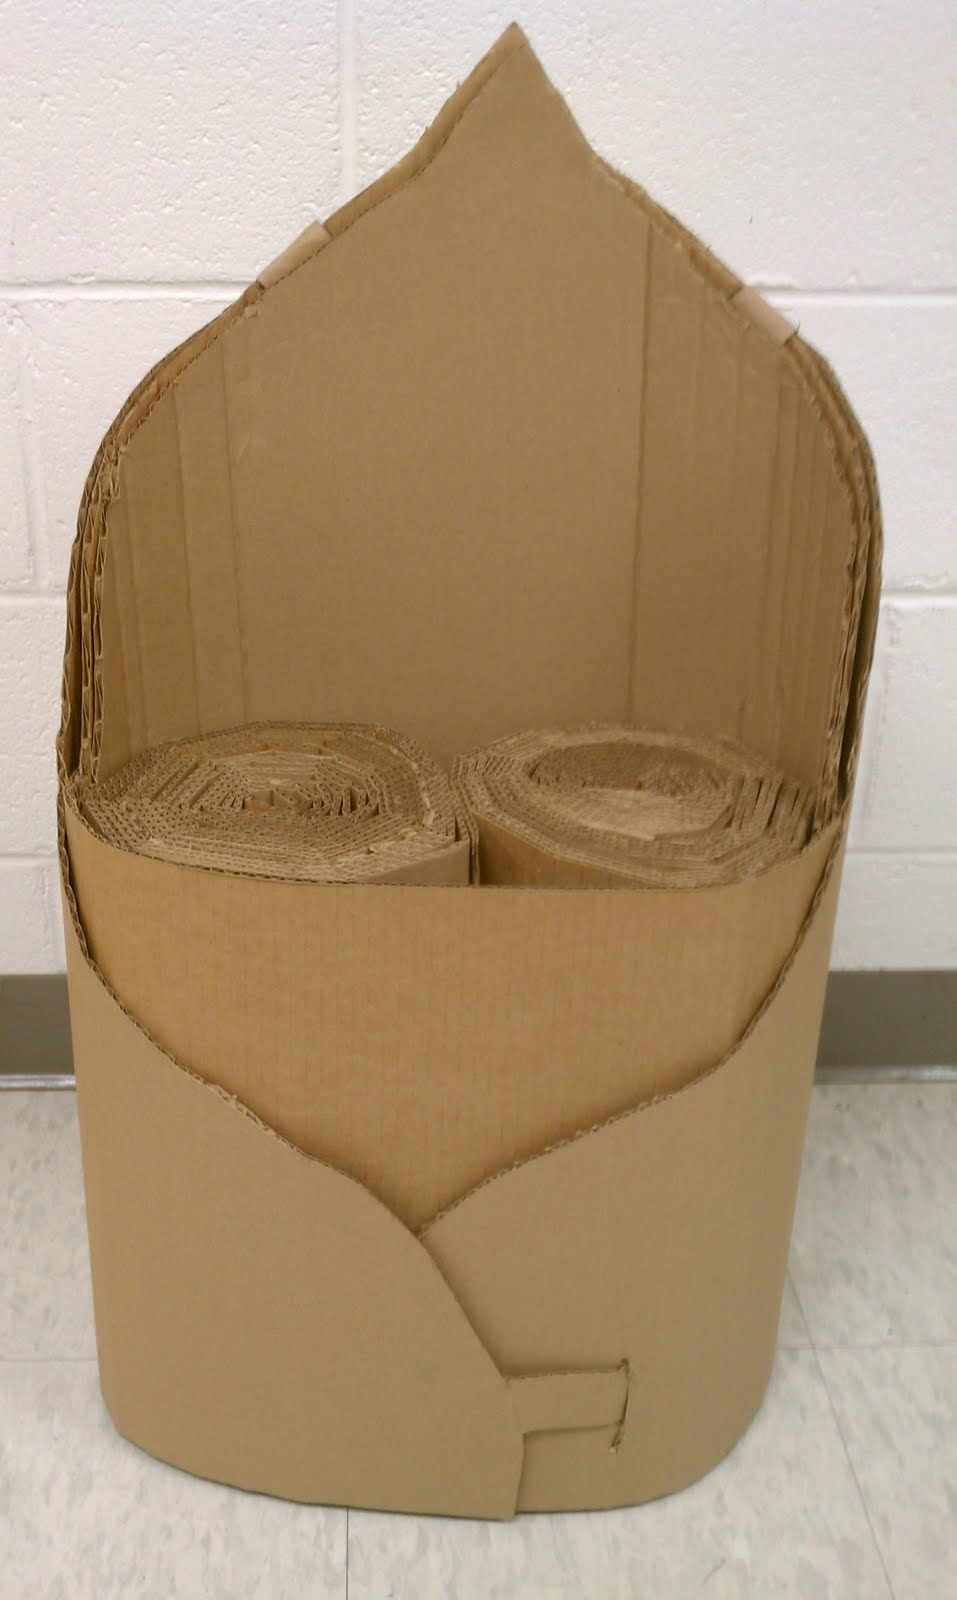 Emily Harr graphy Final Cardboard Chair